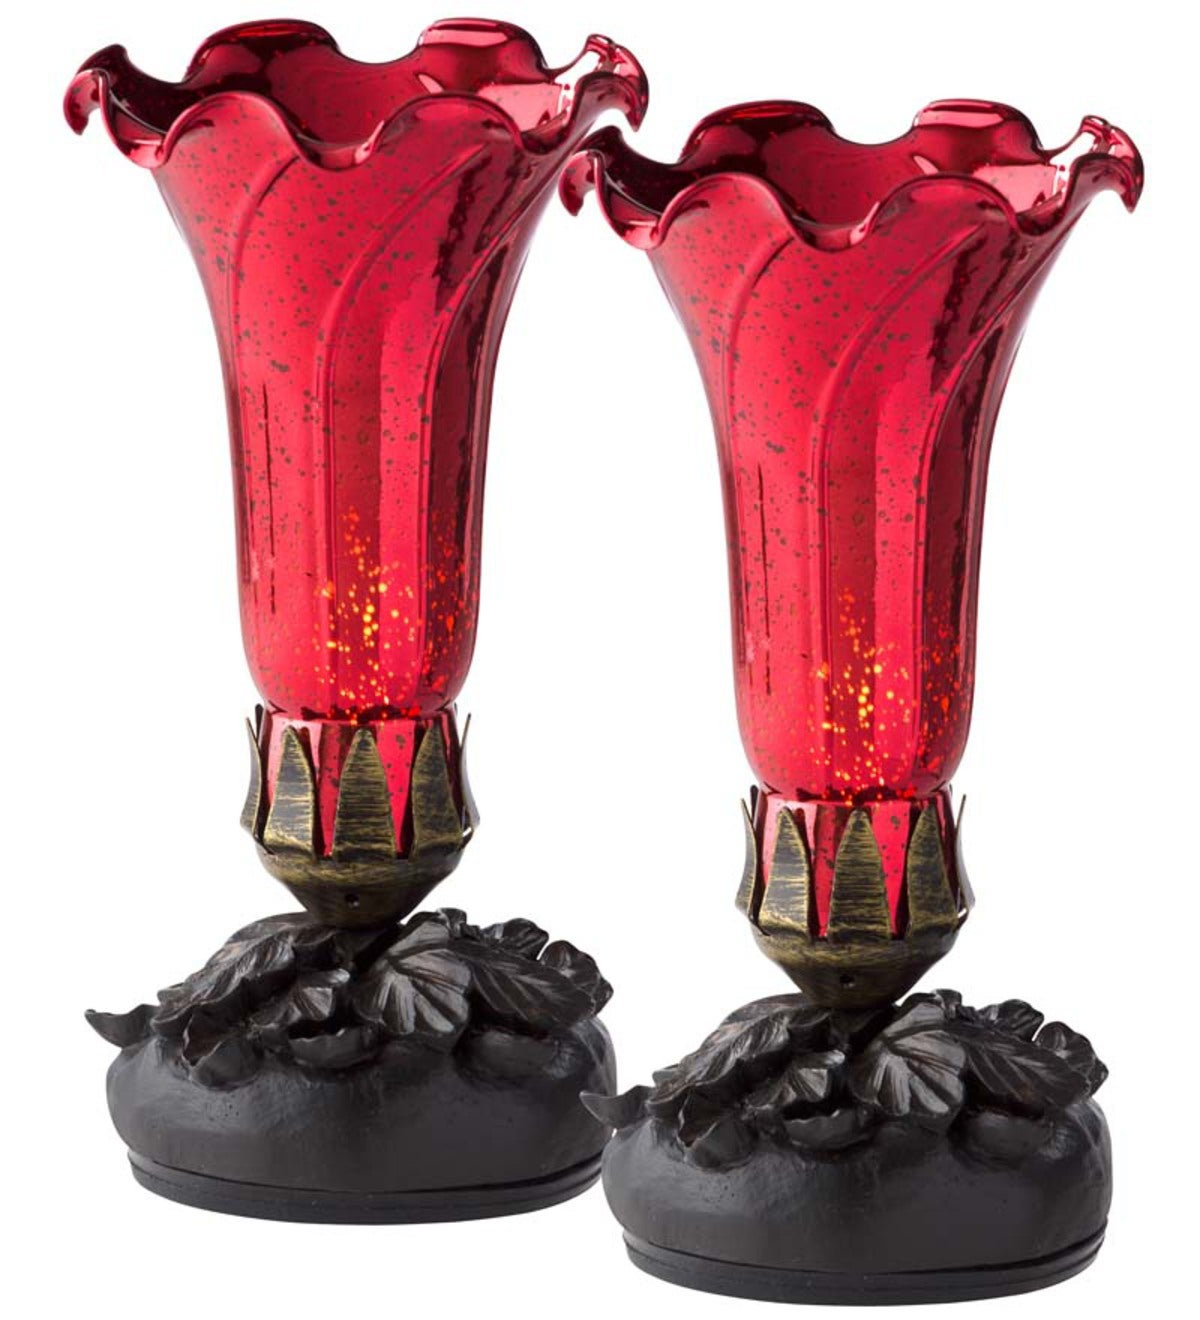 Handblown Mercury Glass Outdoor Lily Lights, Set of 2 - Red